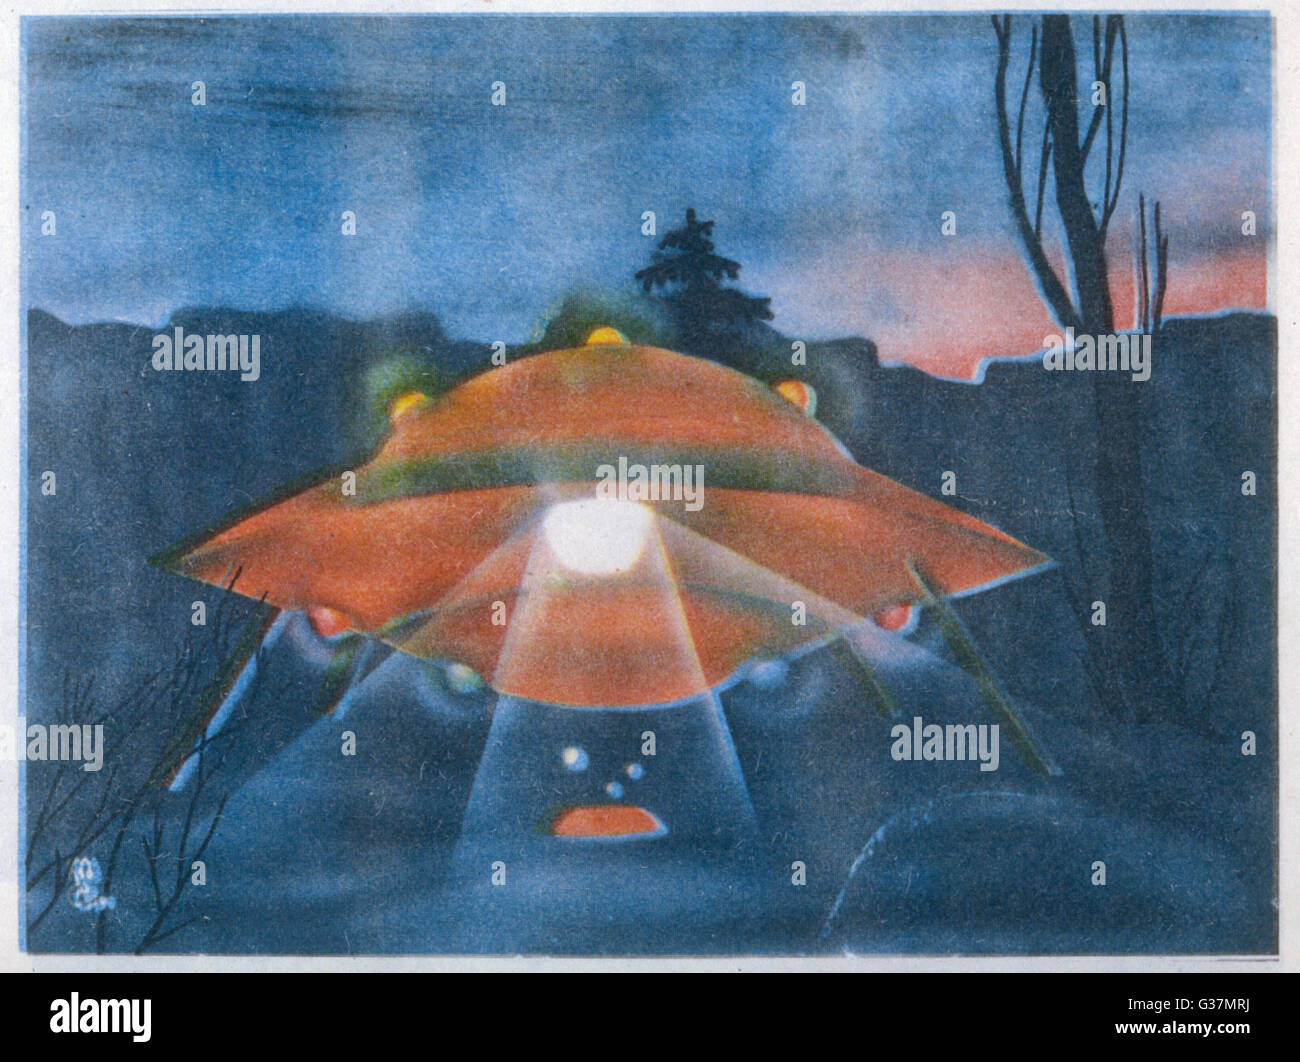 Landed UFO - with lights and  luminous spheres         Date: 1990 - Stock Image